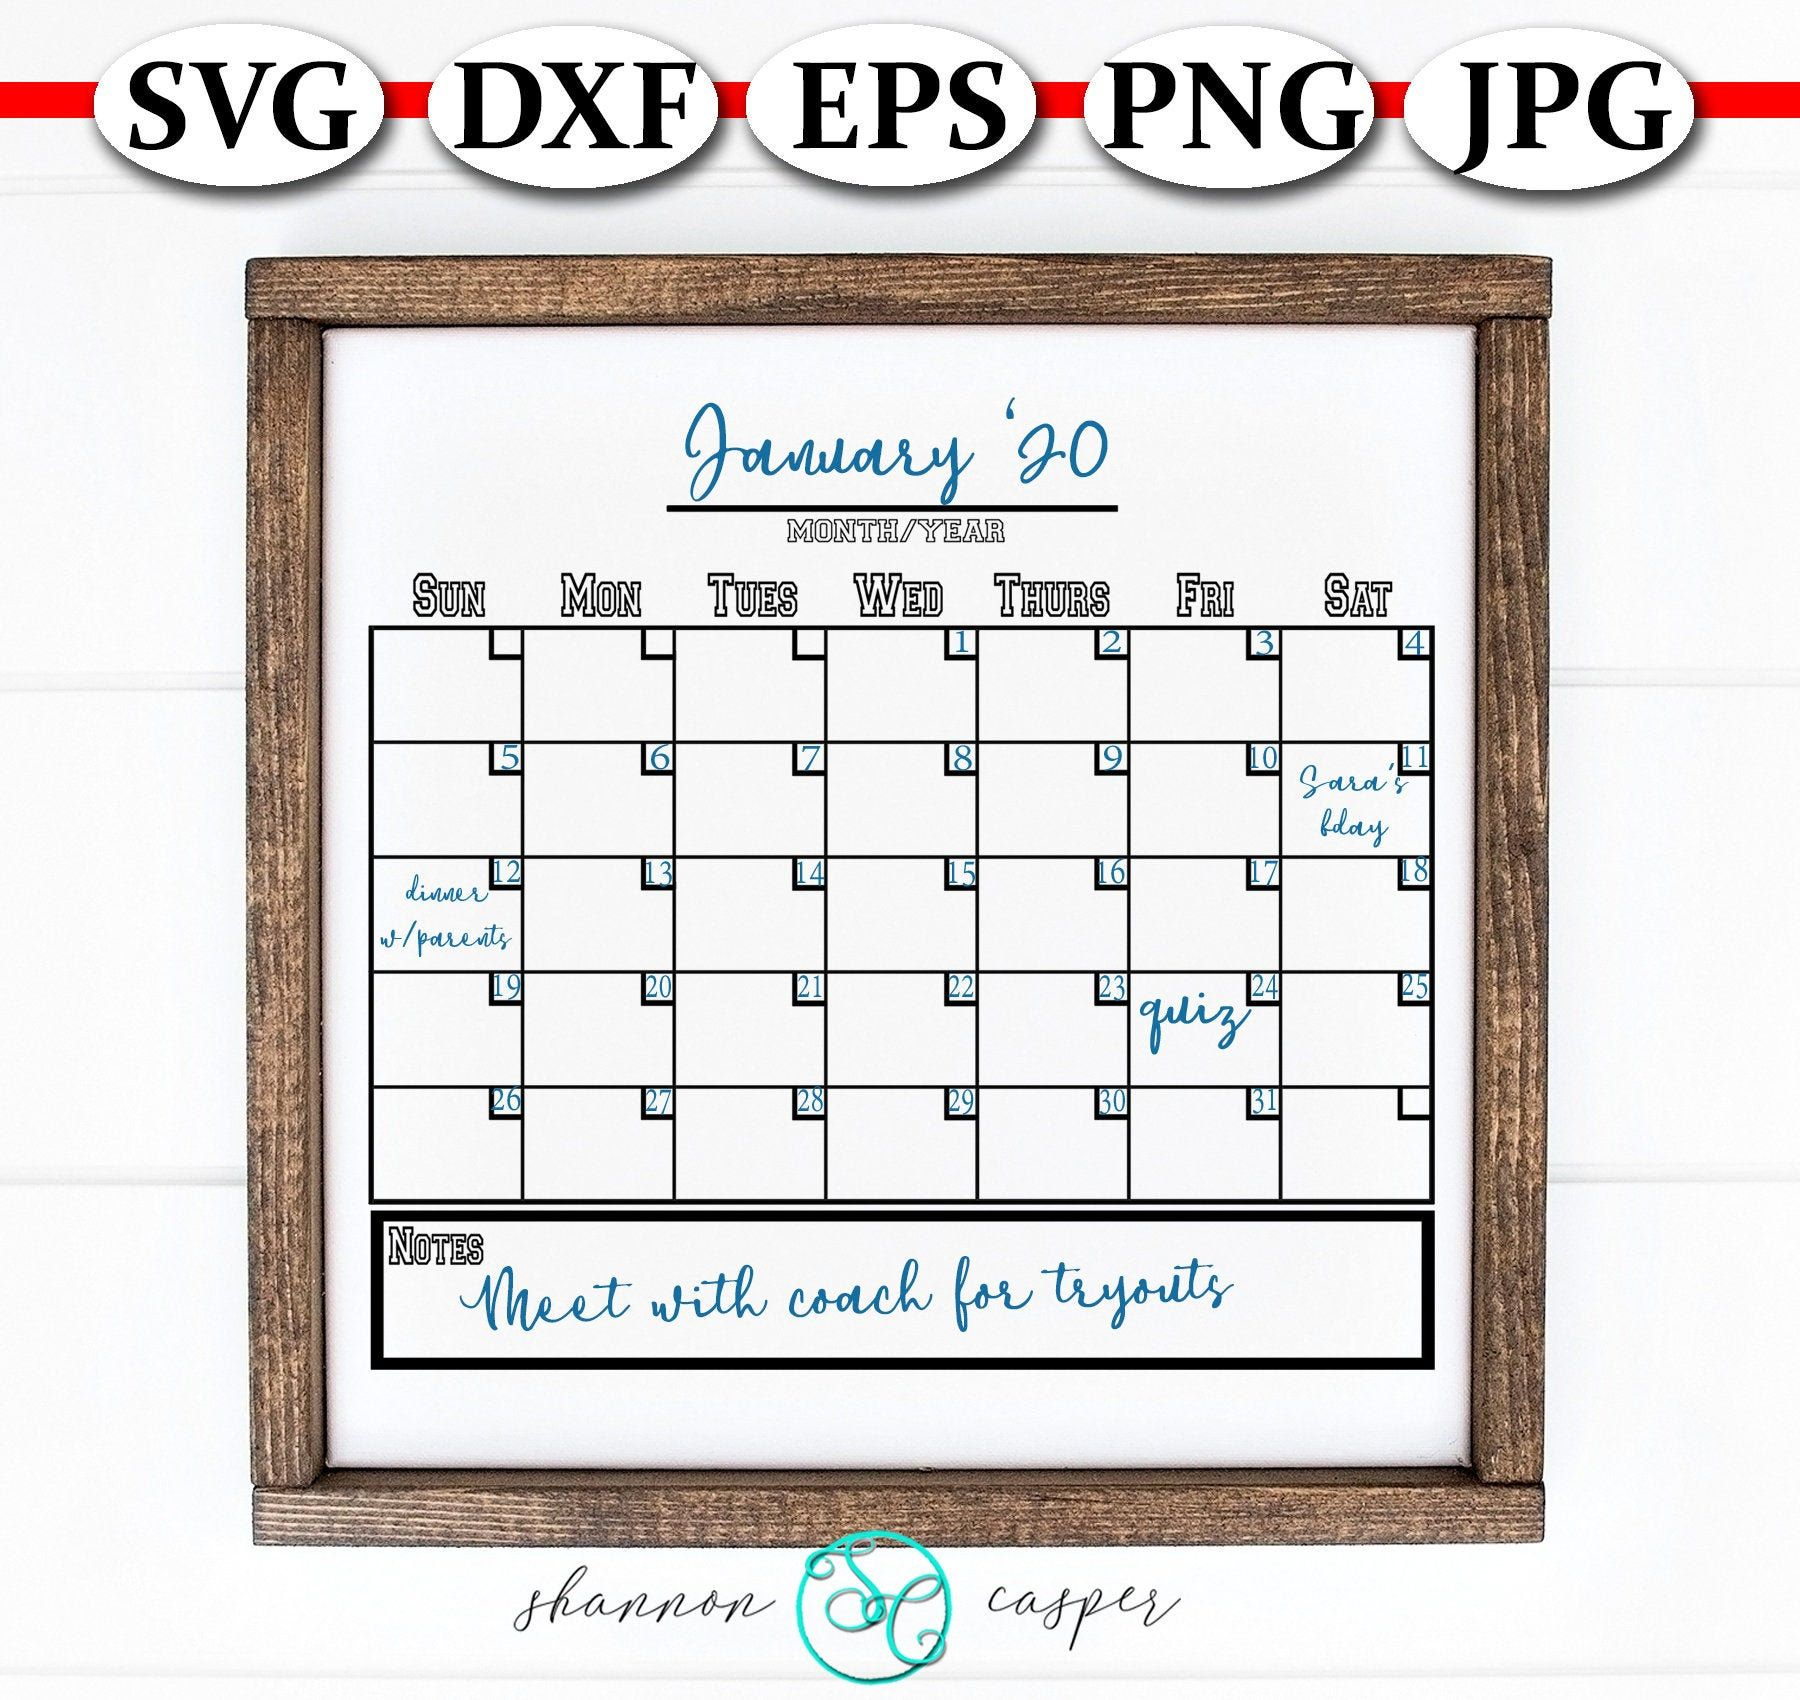 Blank Calendar Svg Downloadable File | Blank Calendar, Wine throughout Blank Calendar Svg